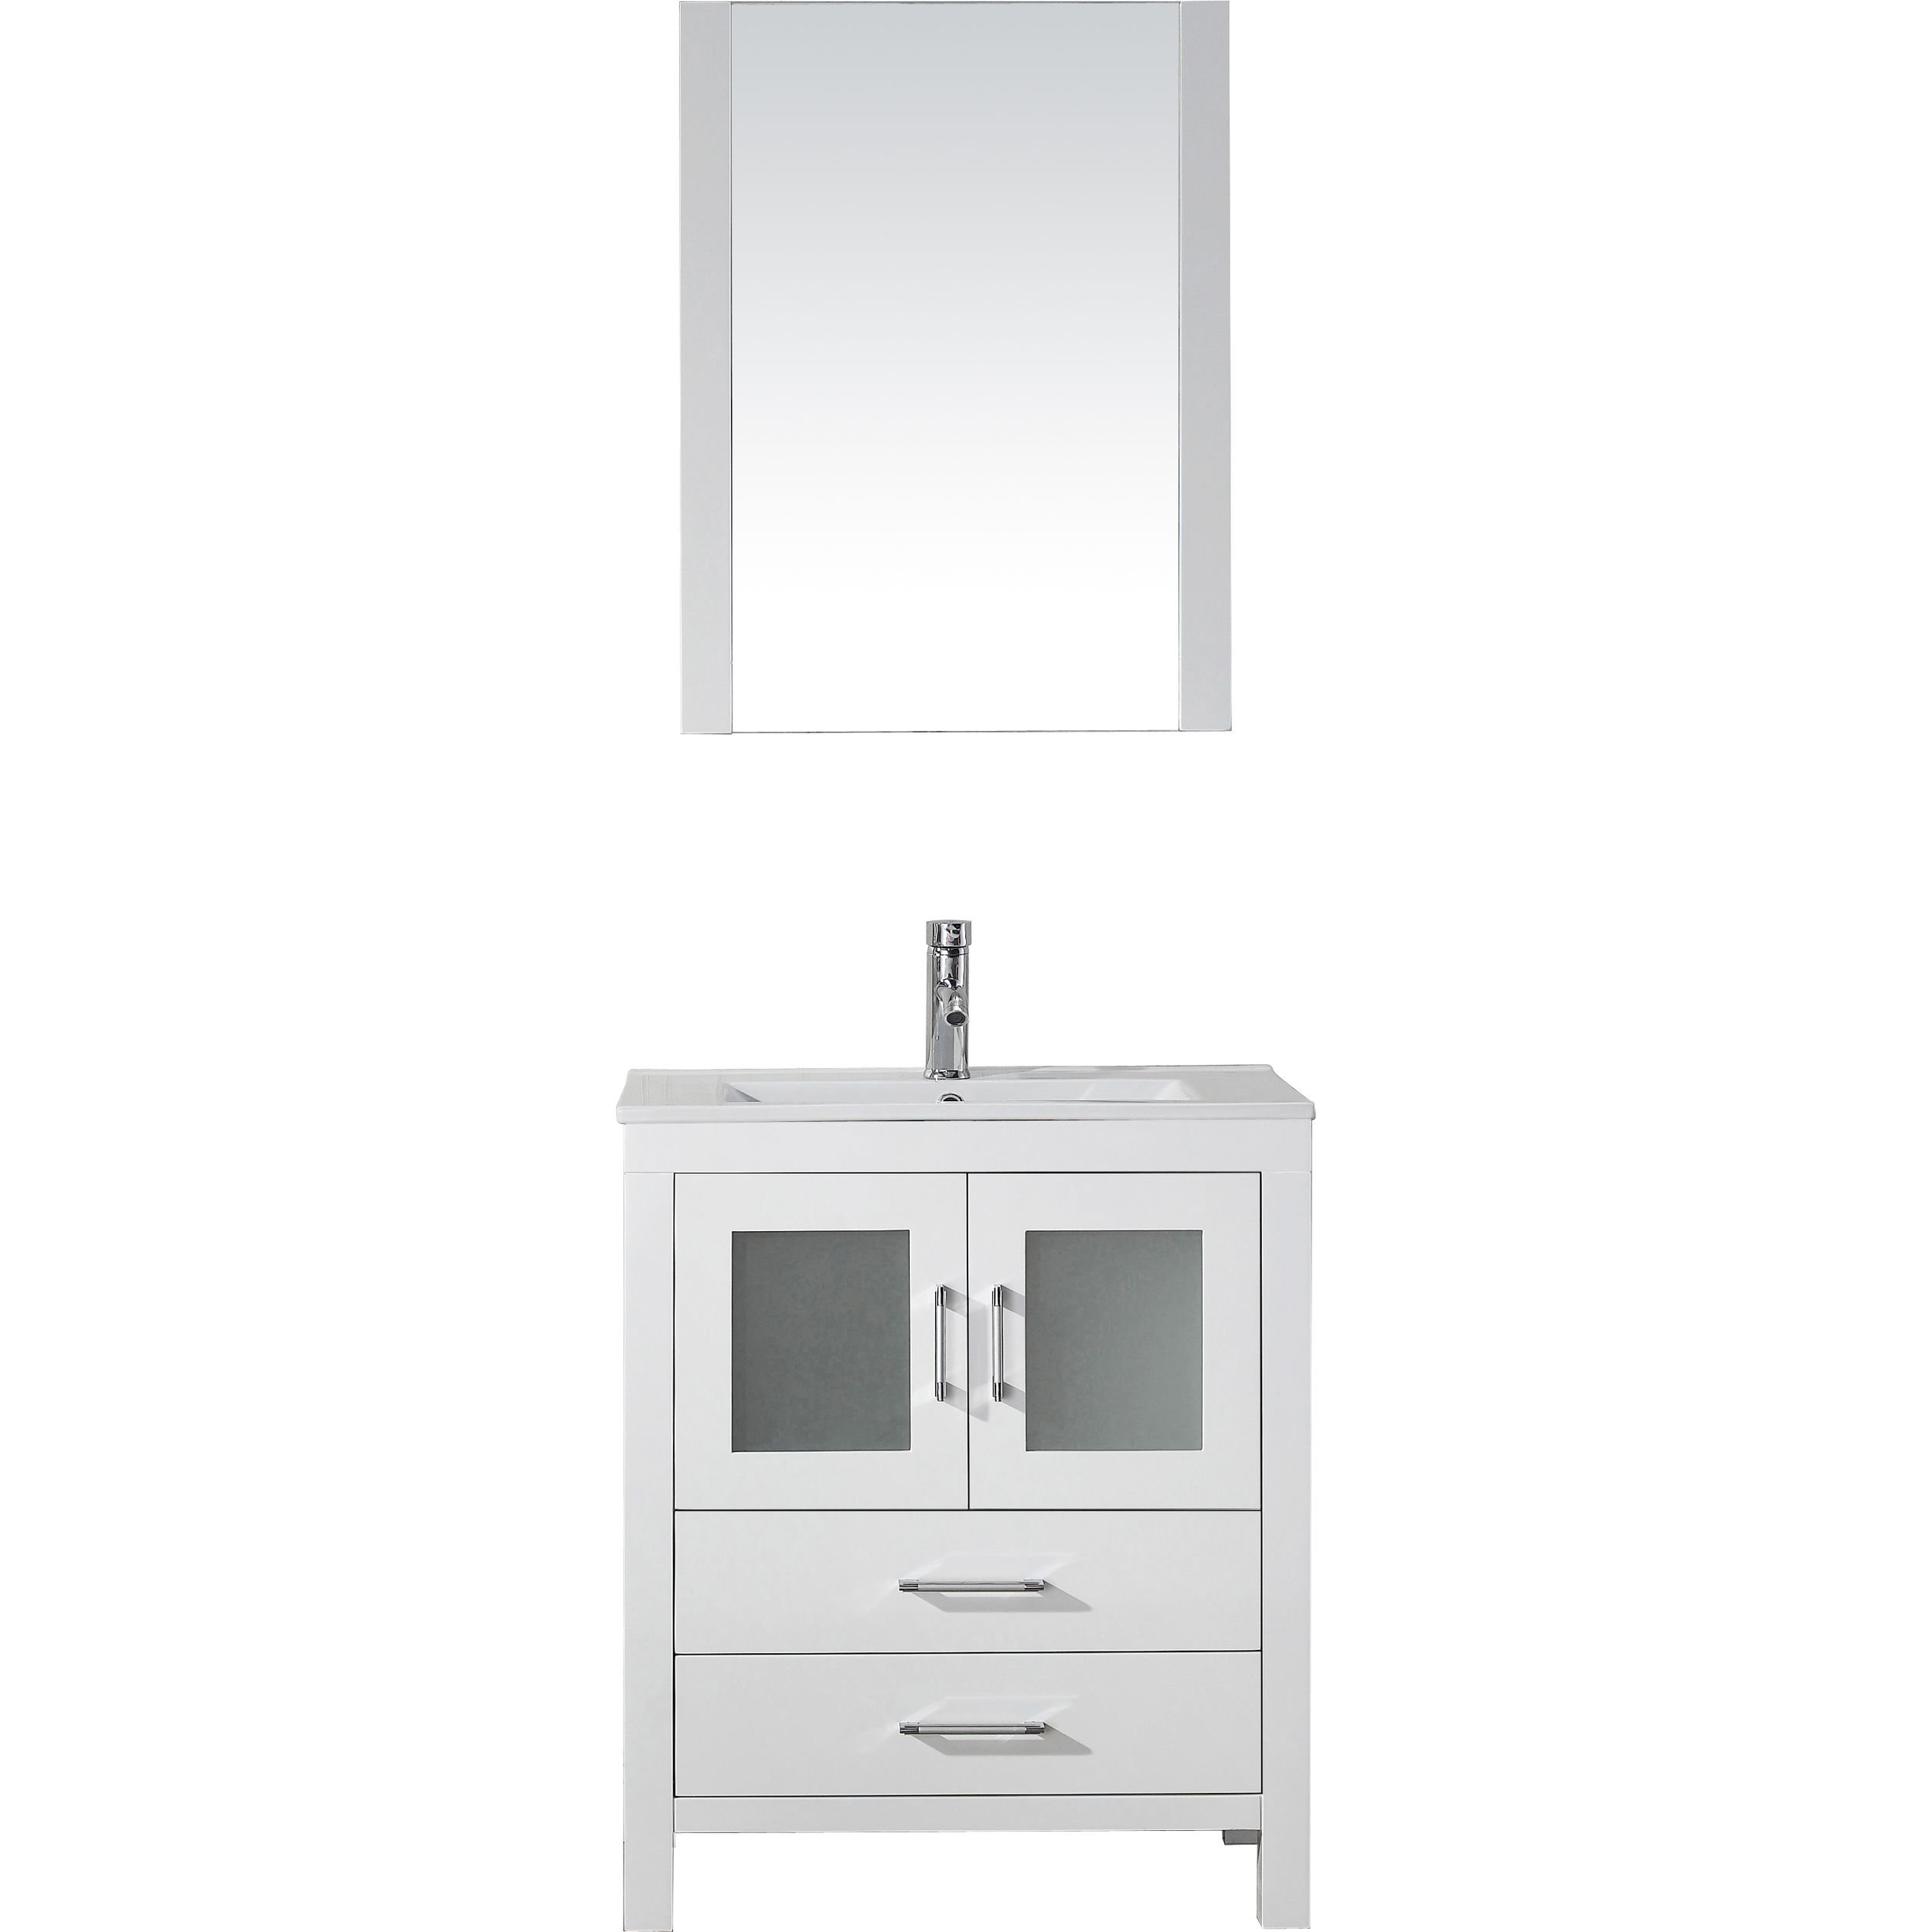 Virtu USA KS-70028-C-WH-001 Dior 28'' single Bathroom Vanity with Ceramic Top and Square Sink with Brushed Nickel Faucet and Mirror, White